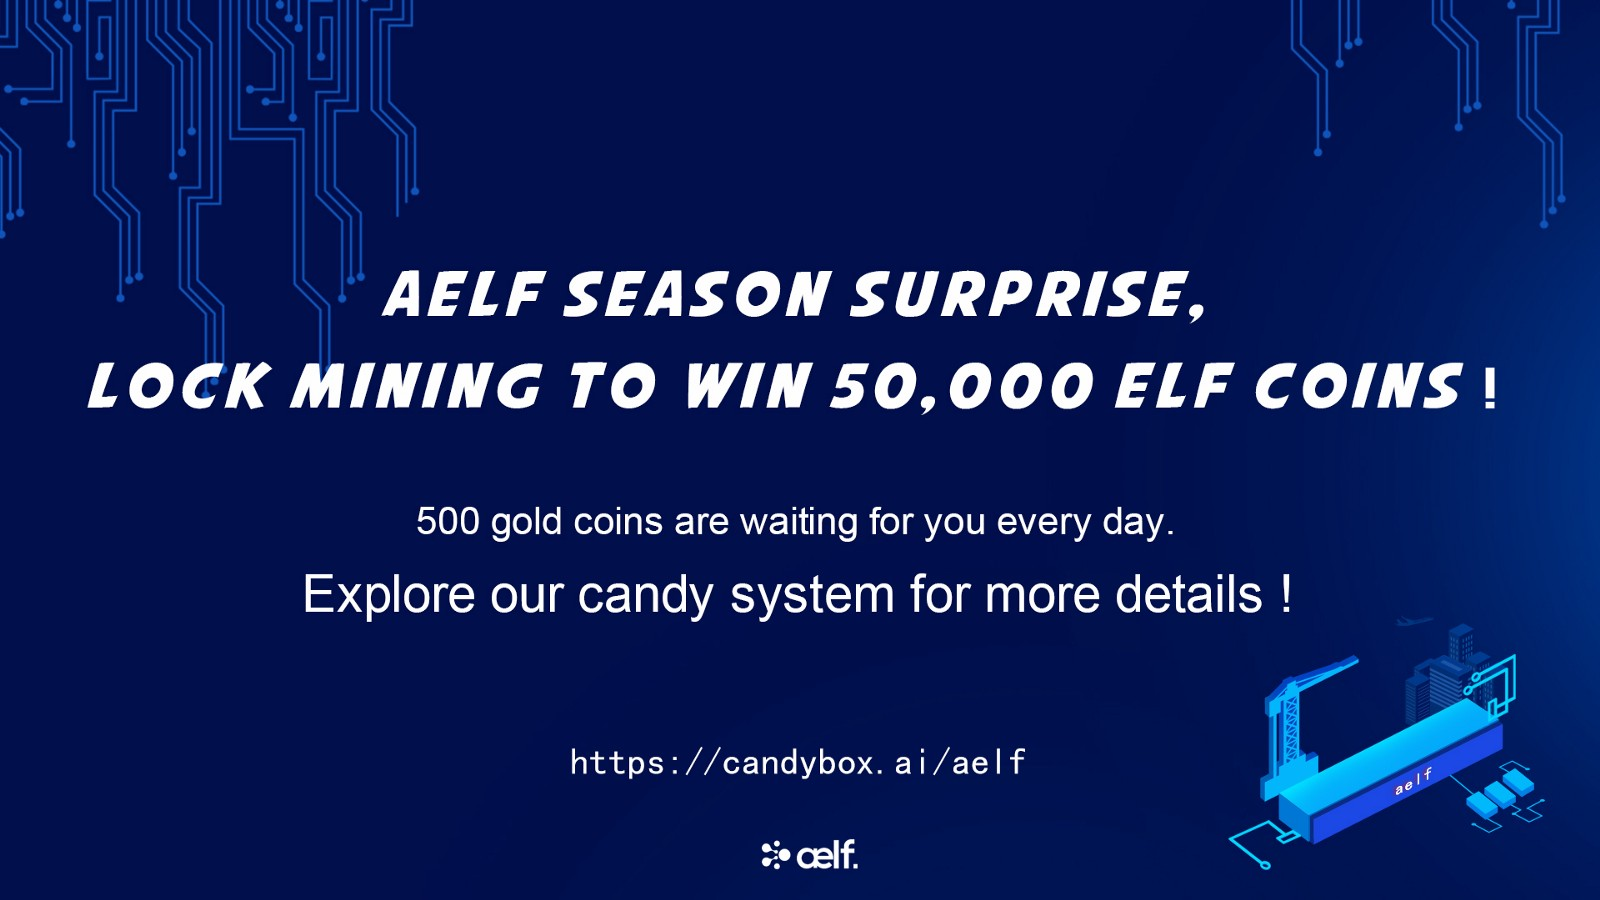 Aelf The New Lock Mining Event Instructions On How To Play The Game